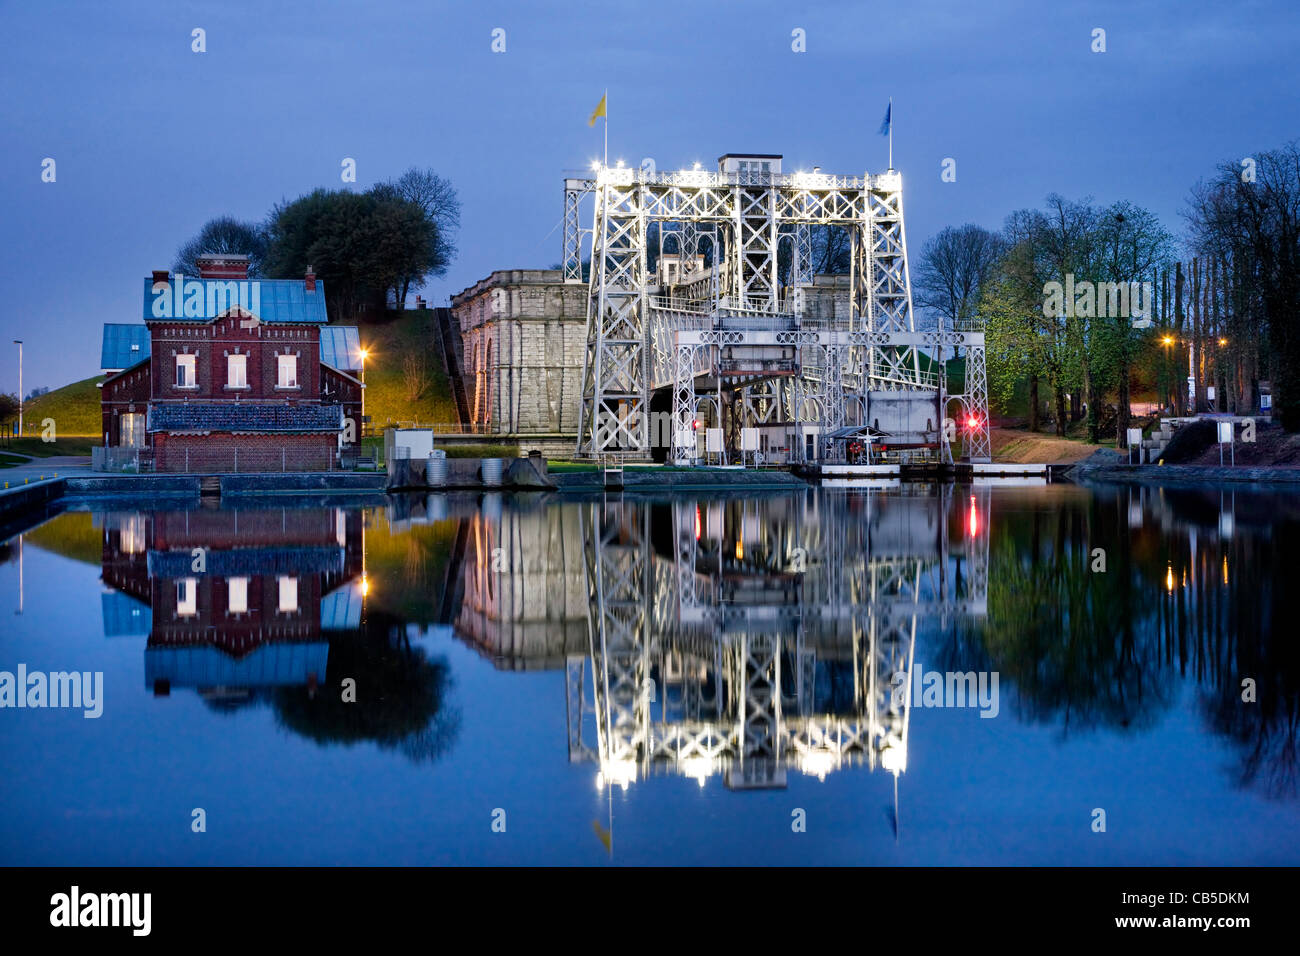 Hydraulic boat lift n°4 at sunset on the Canal du Centre at Thieu near La Louvière in the Sillon industriel - Stock Image